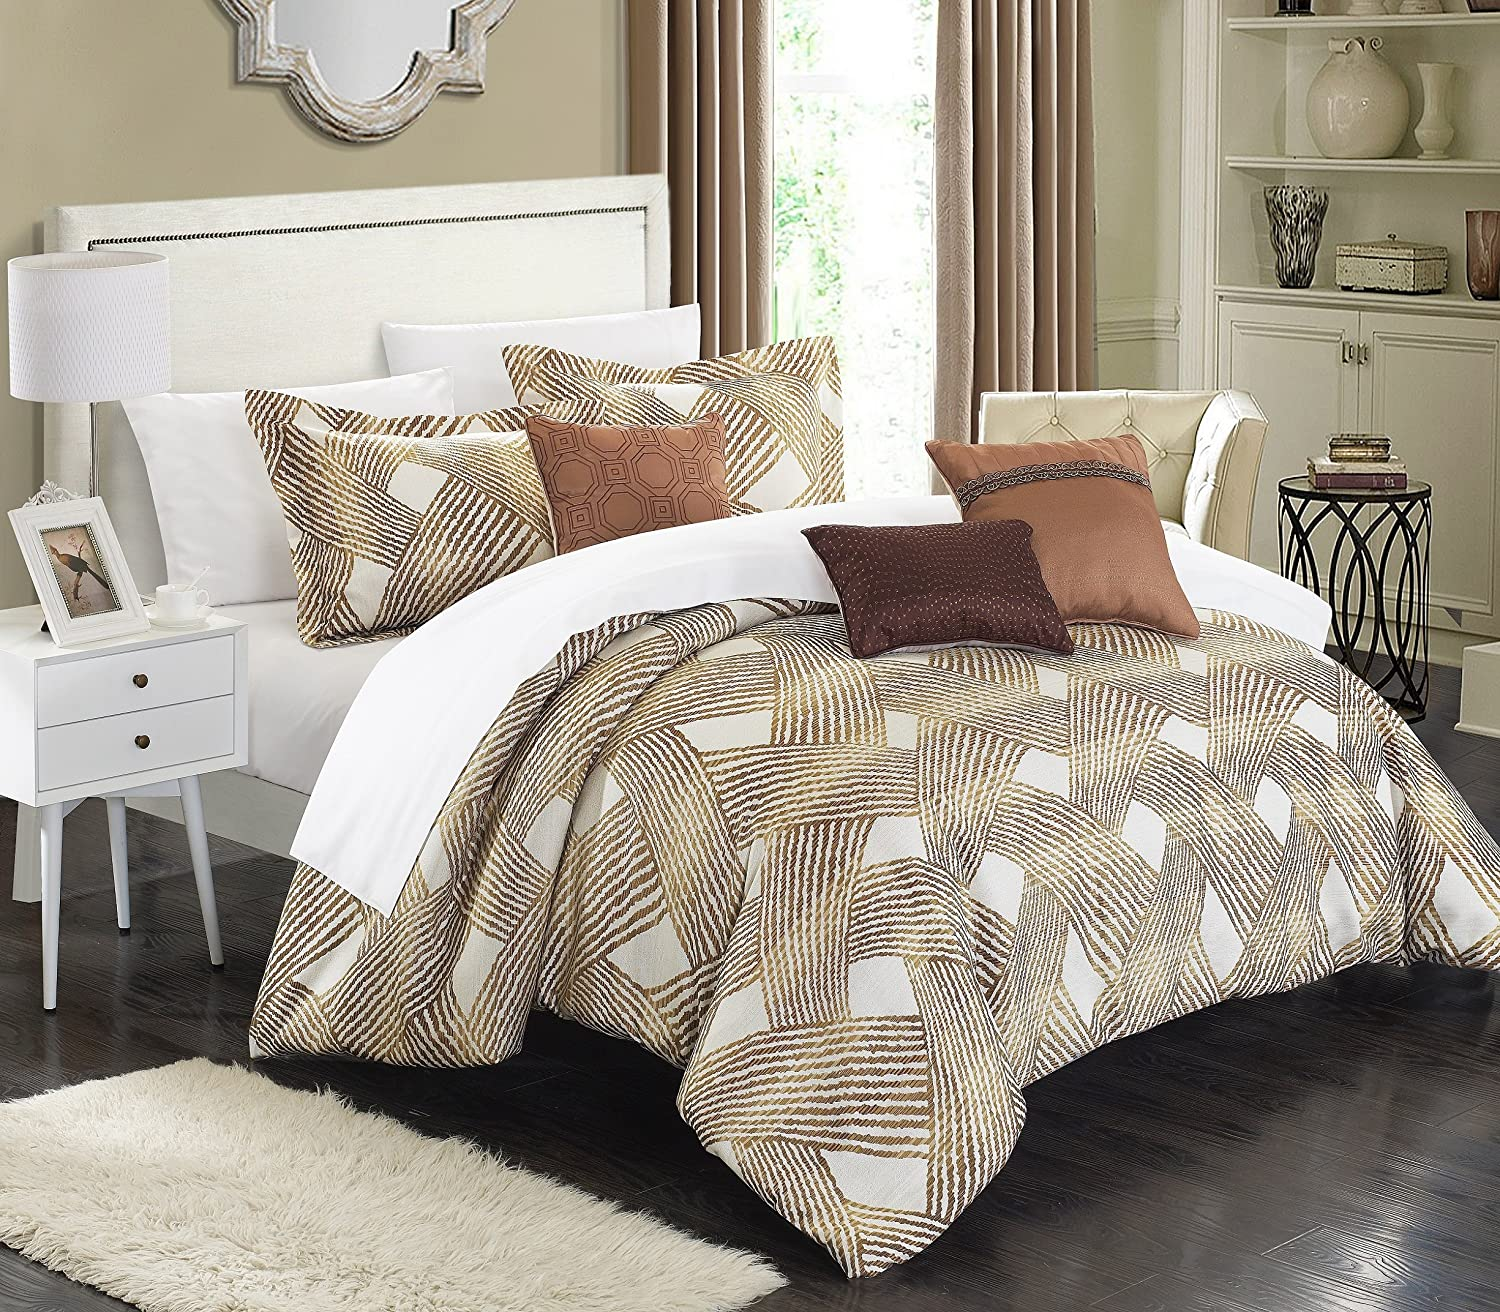 Chic Home 6 Piece Fiorella New Luxury Jacquard Collection Comforter Set Queen Gold Amazon Co Uk Kitchen Home